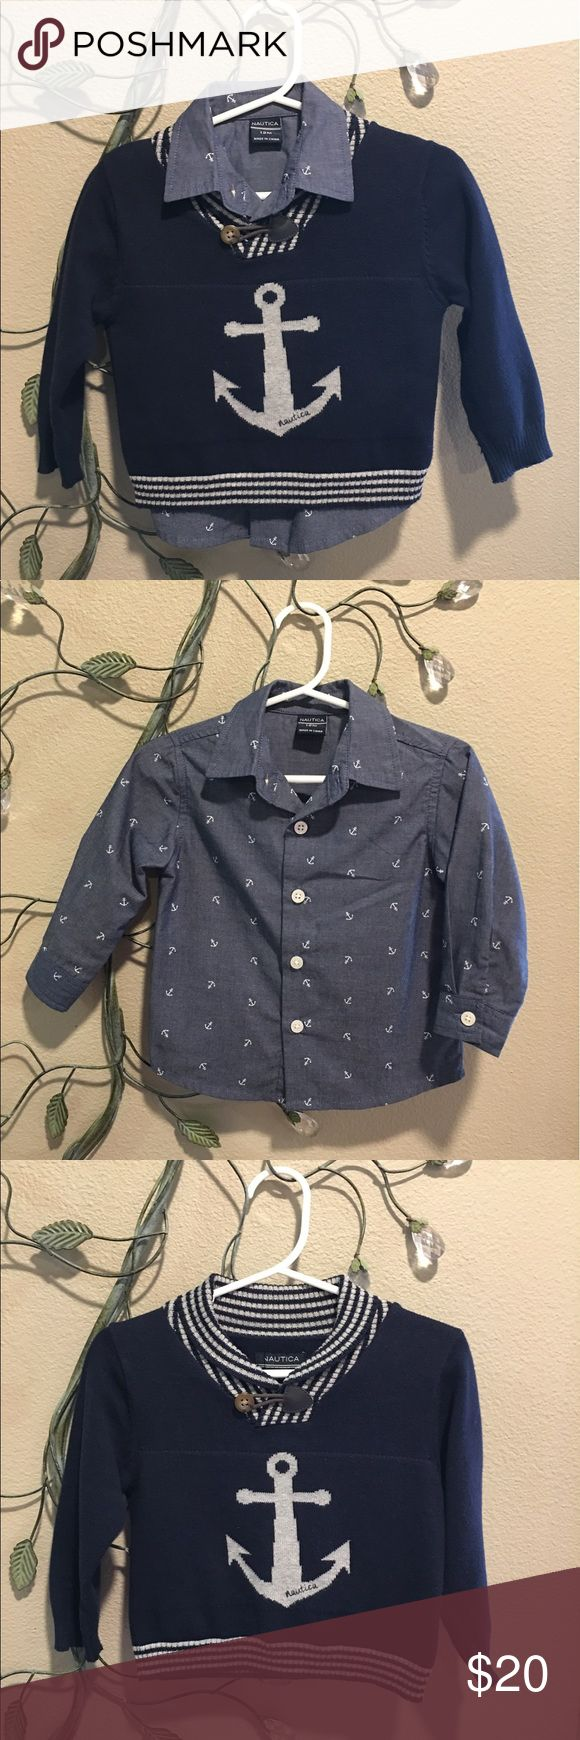 ⚓️Nautica⚓️ Toddler Boy Anchor Shirt & Sweater Set EUC! Long sleeve button up anchor shirt and matching anchor sweater! This set is so handsome!!😍⚓️💙 Nautica Matching Sets